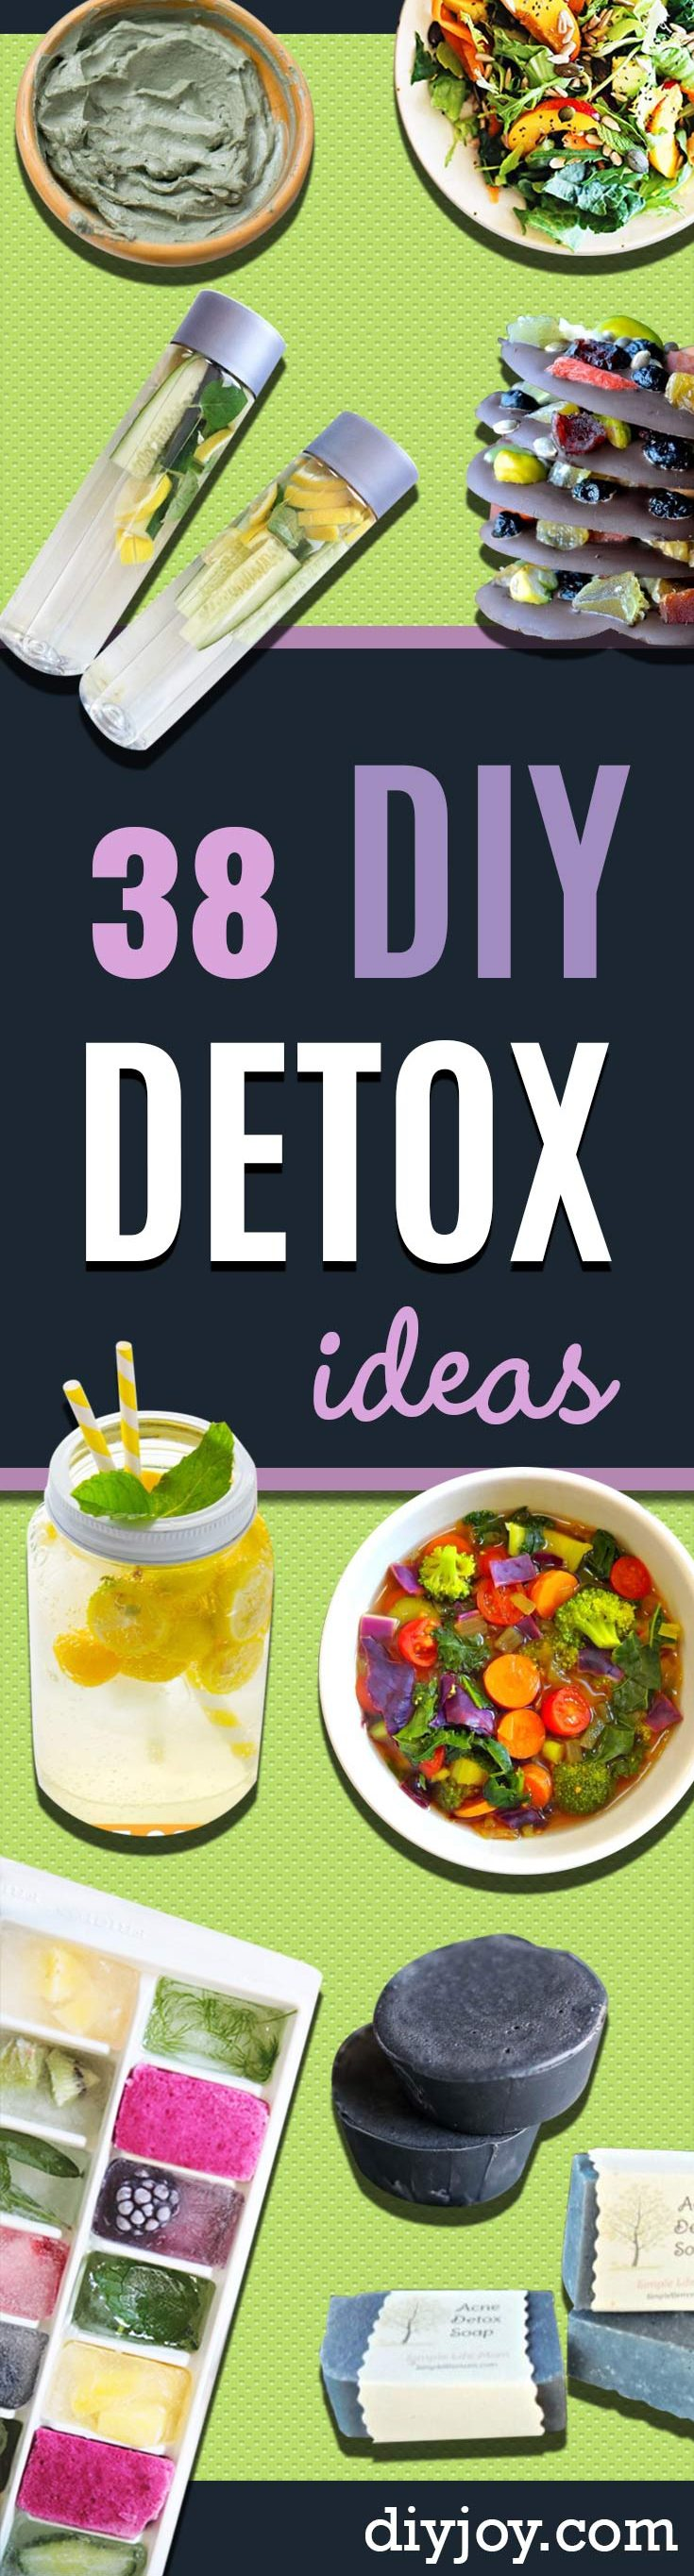 DIY Detox Recipes, Ideas and Tips - How to Detox Your Body, Brain and Skin for Health and Weight Loss. Detox Drinks, Waters, Teas, Wraps, Soup, Masks and Skincare Products You Can Make At Home